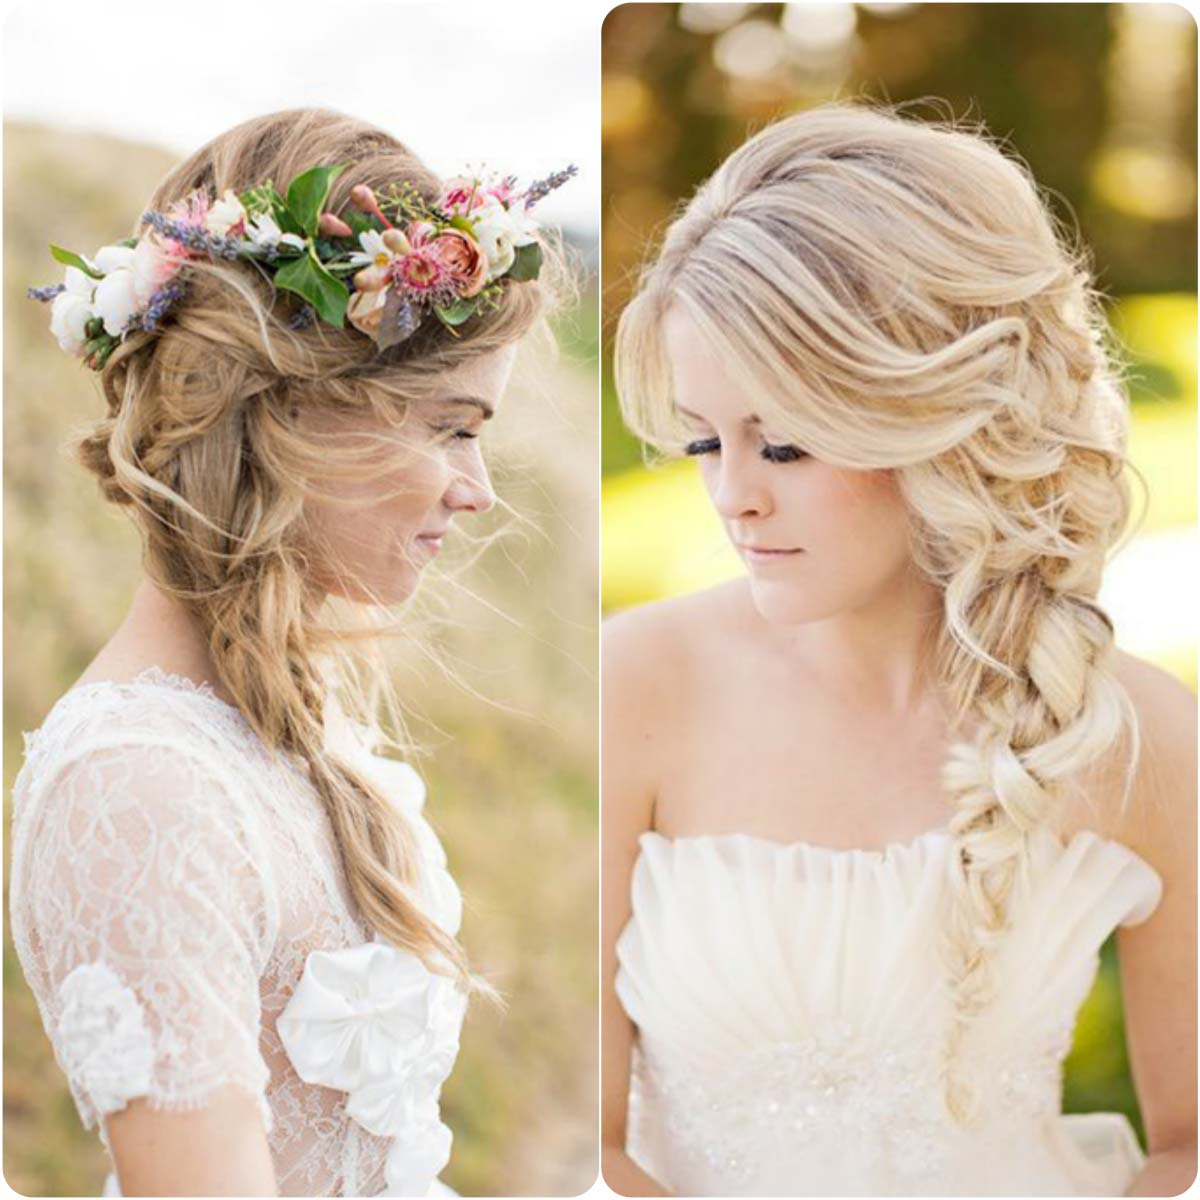 28 Prettiest Wedding Hairstyles: 20 Best Wedding Braided Hairstyles For Bridals 2016-2017